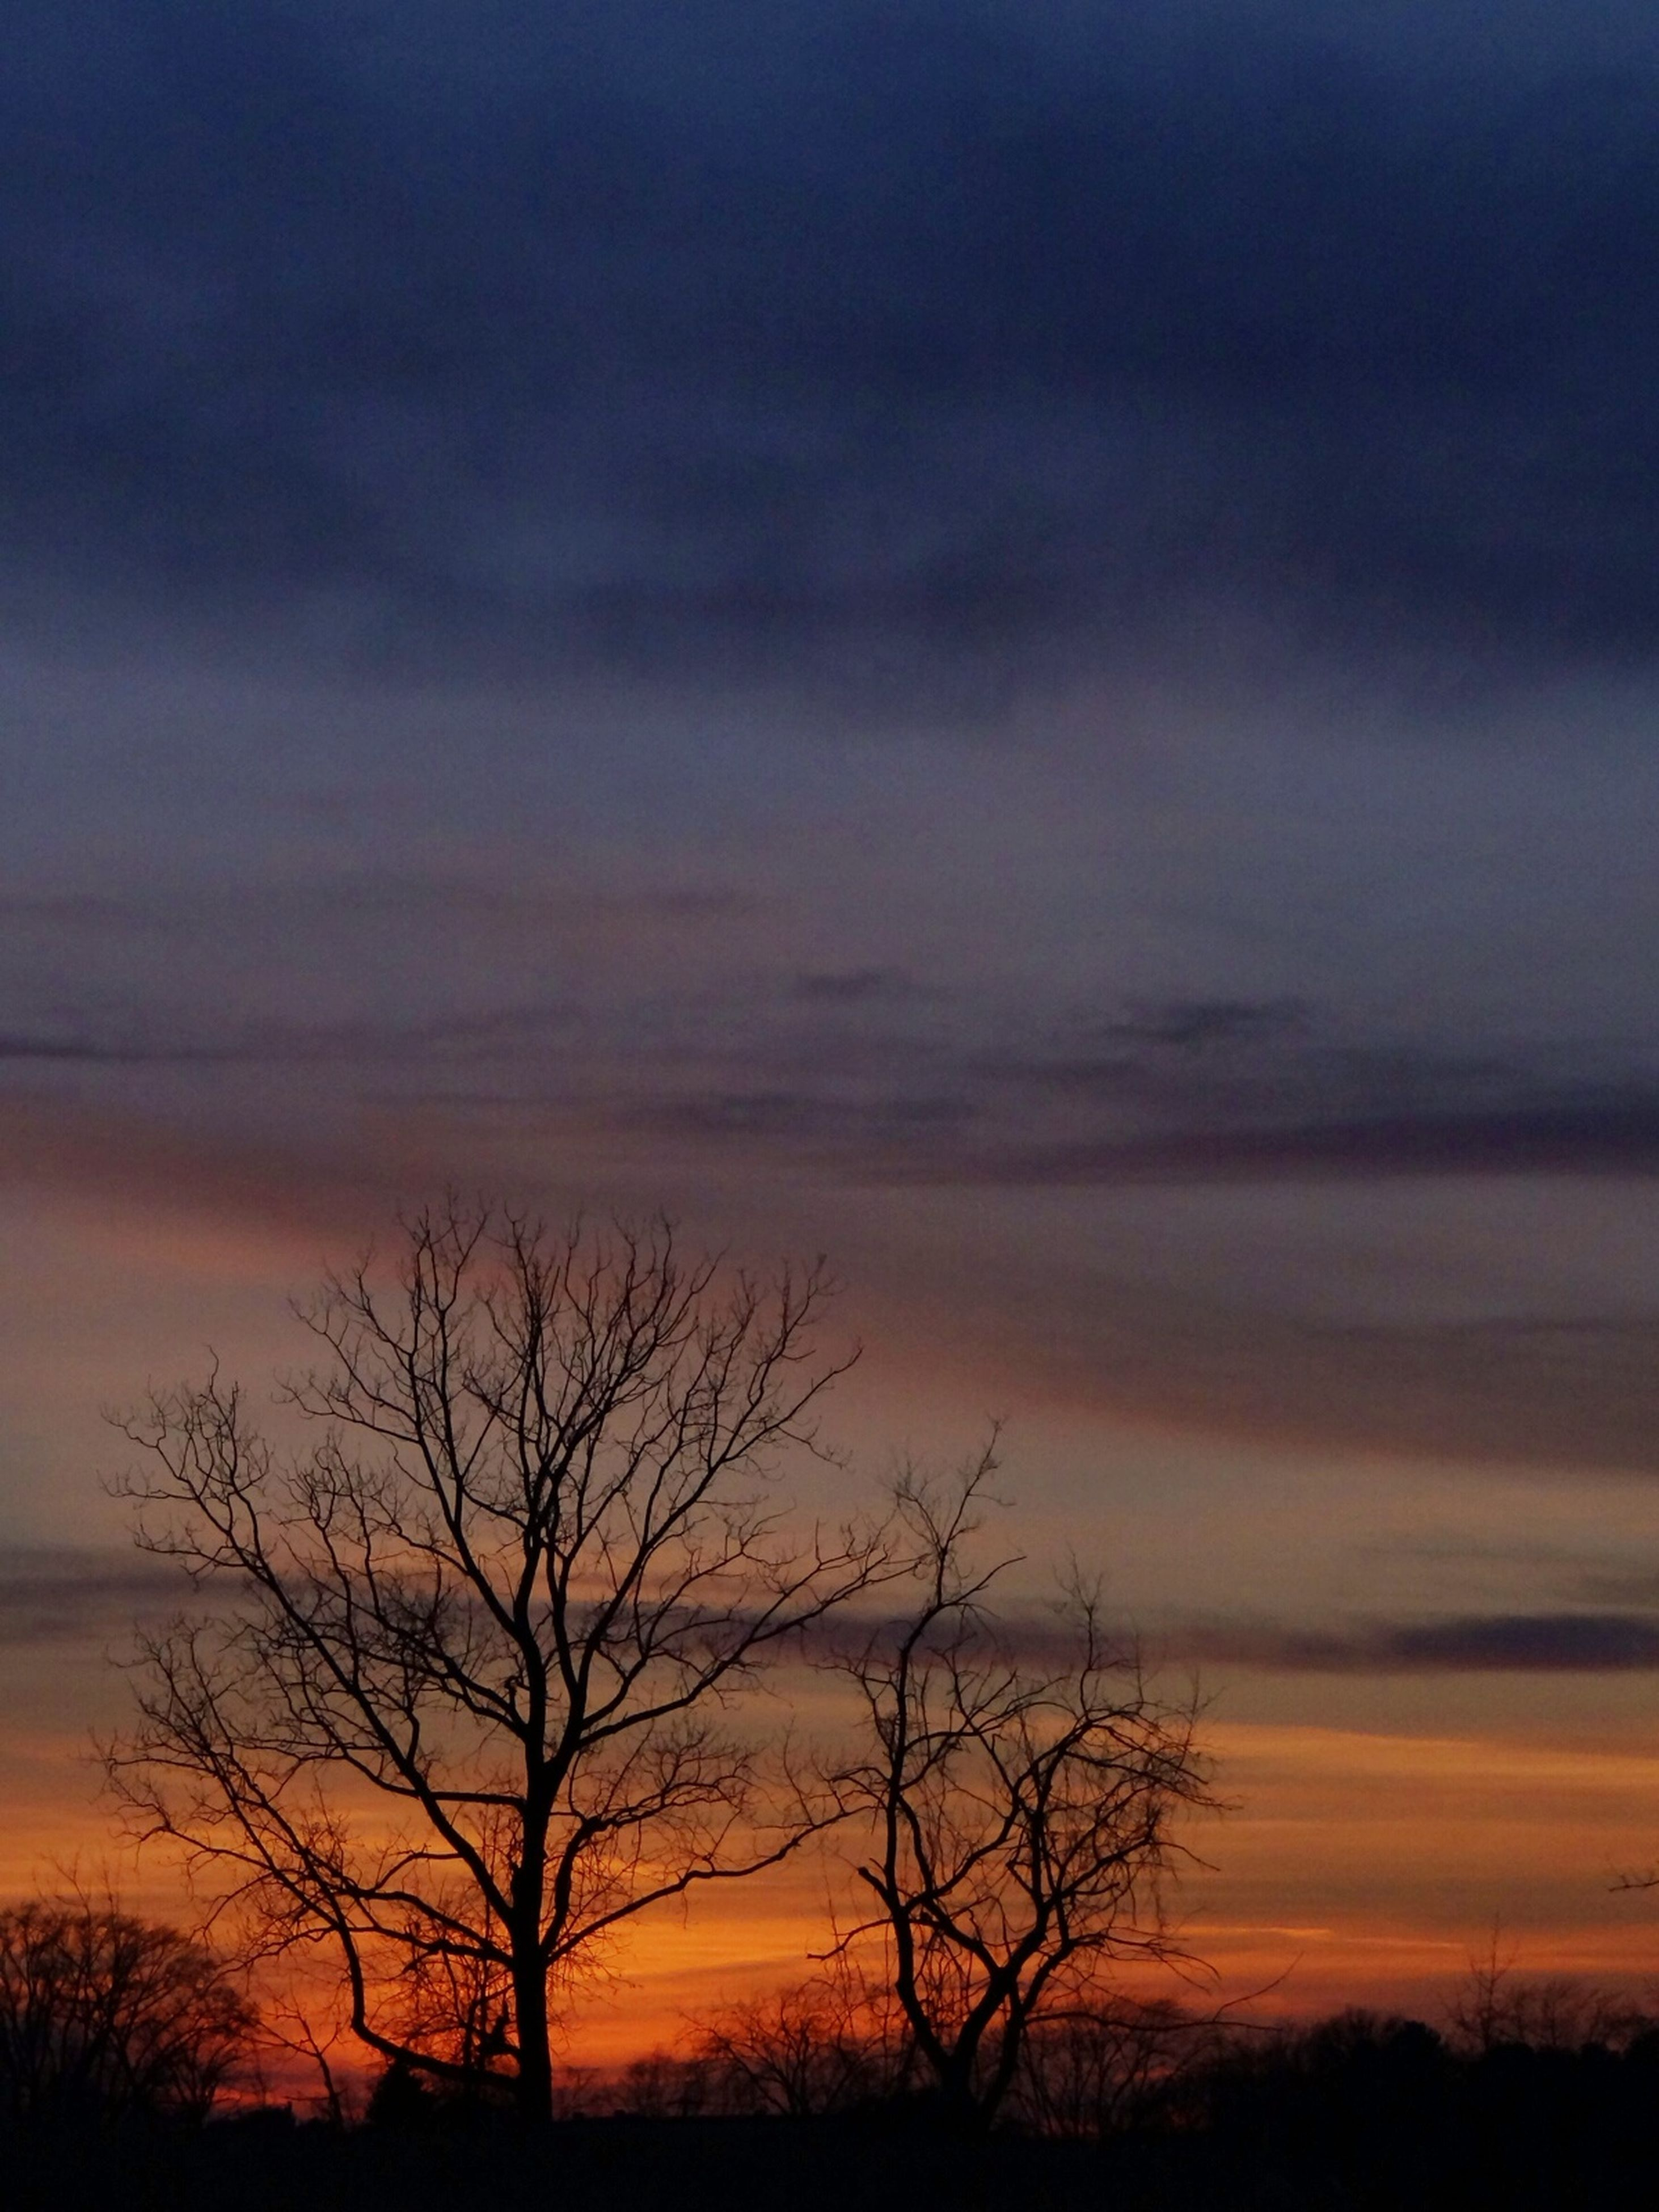 silhouette, sunset, bare tree, sky, tranquility, scenics, beauty in nature, tree, tranquil scene, branch, orange color, cloud - sky, nature, low angle view, dramatic sky, idyllic, cloud, majestic, outdoors, dusk